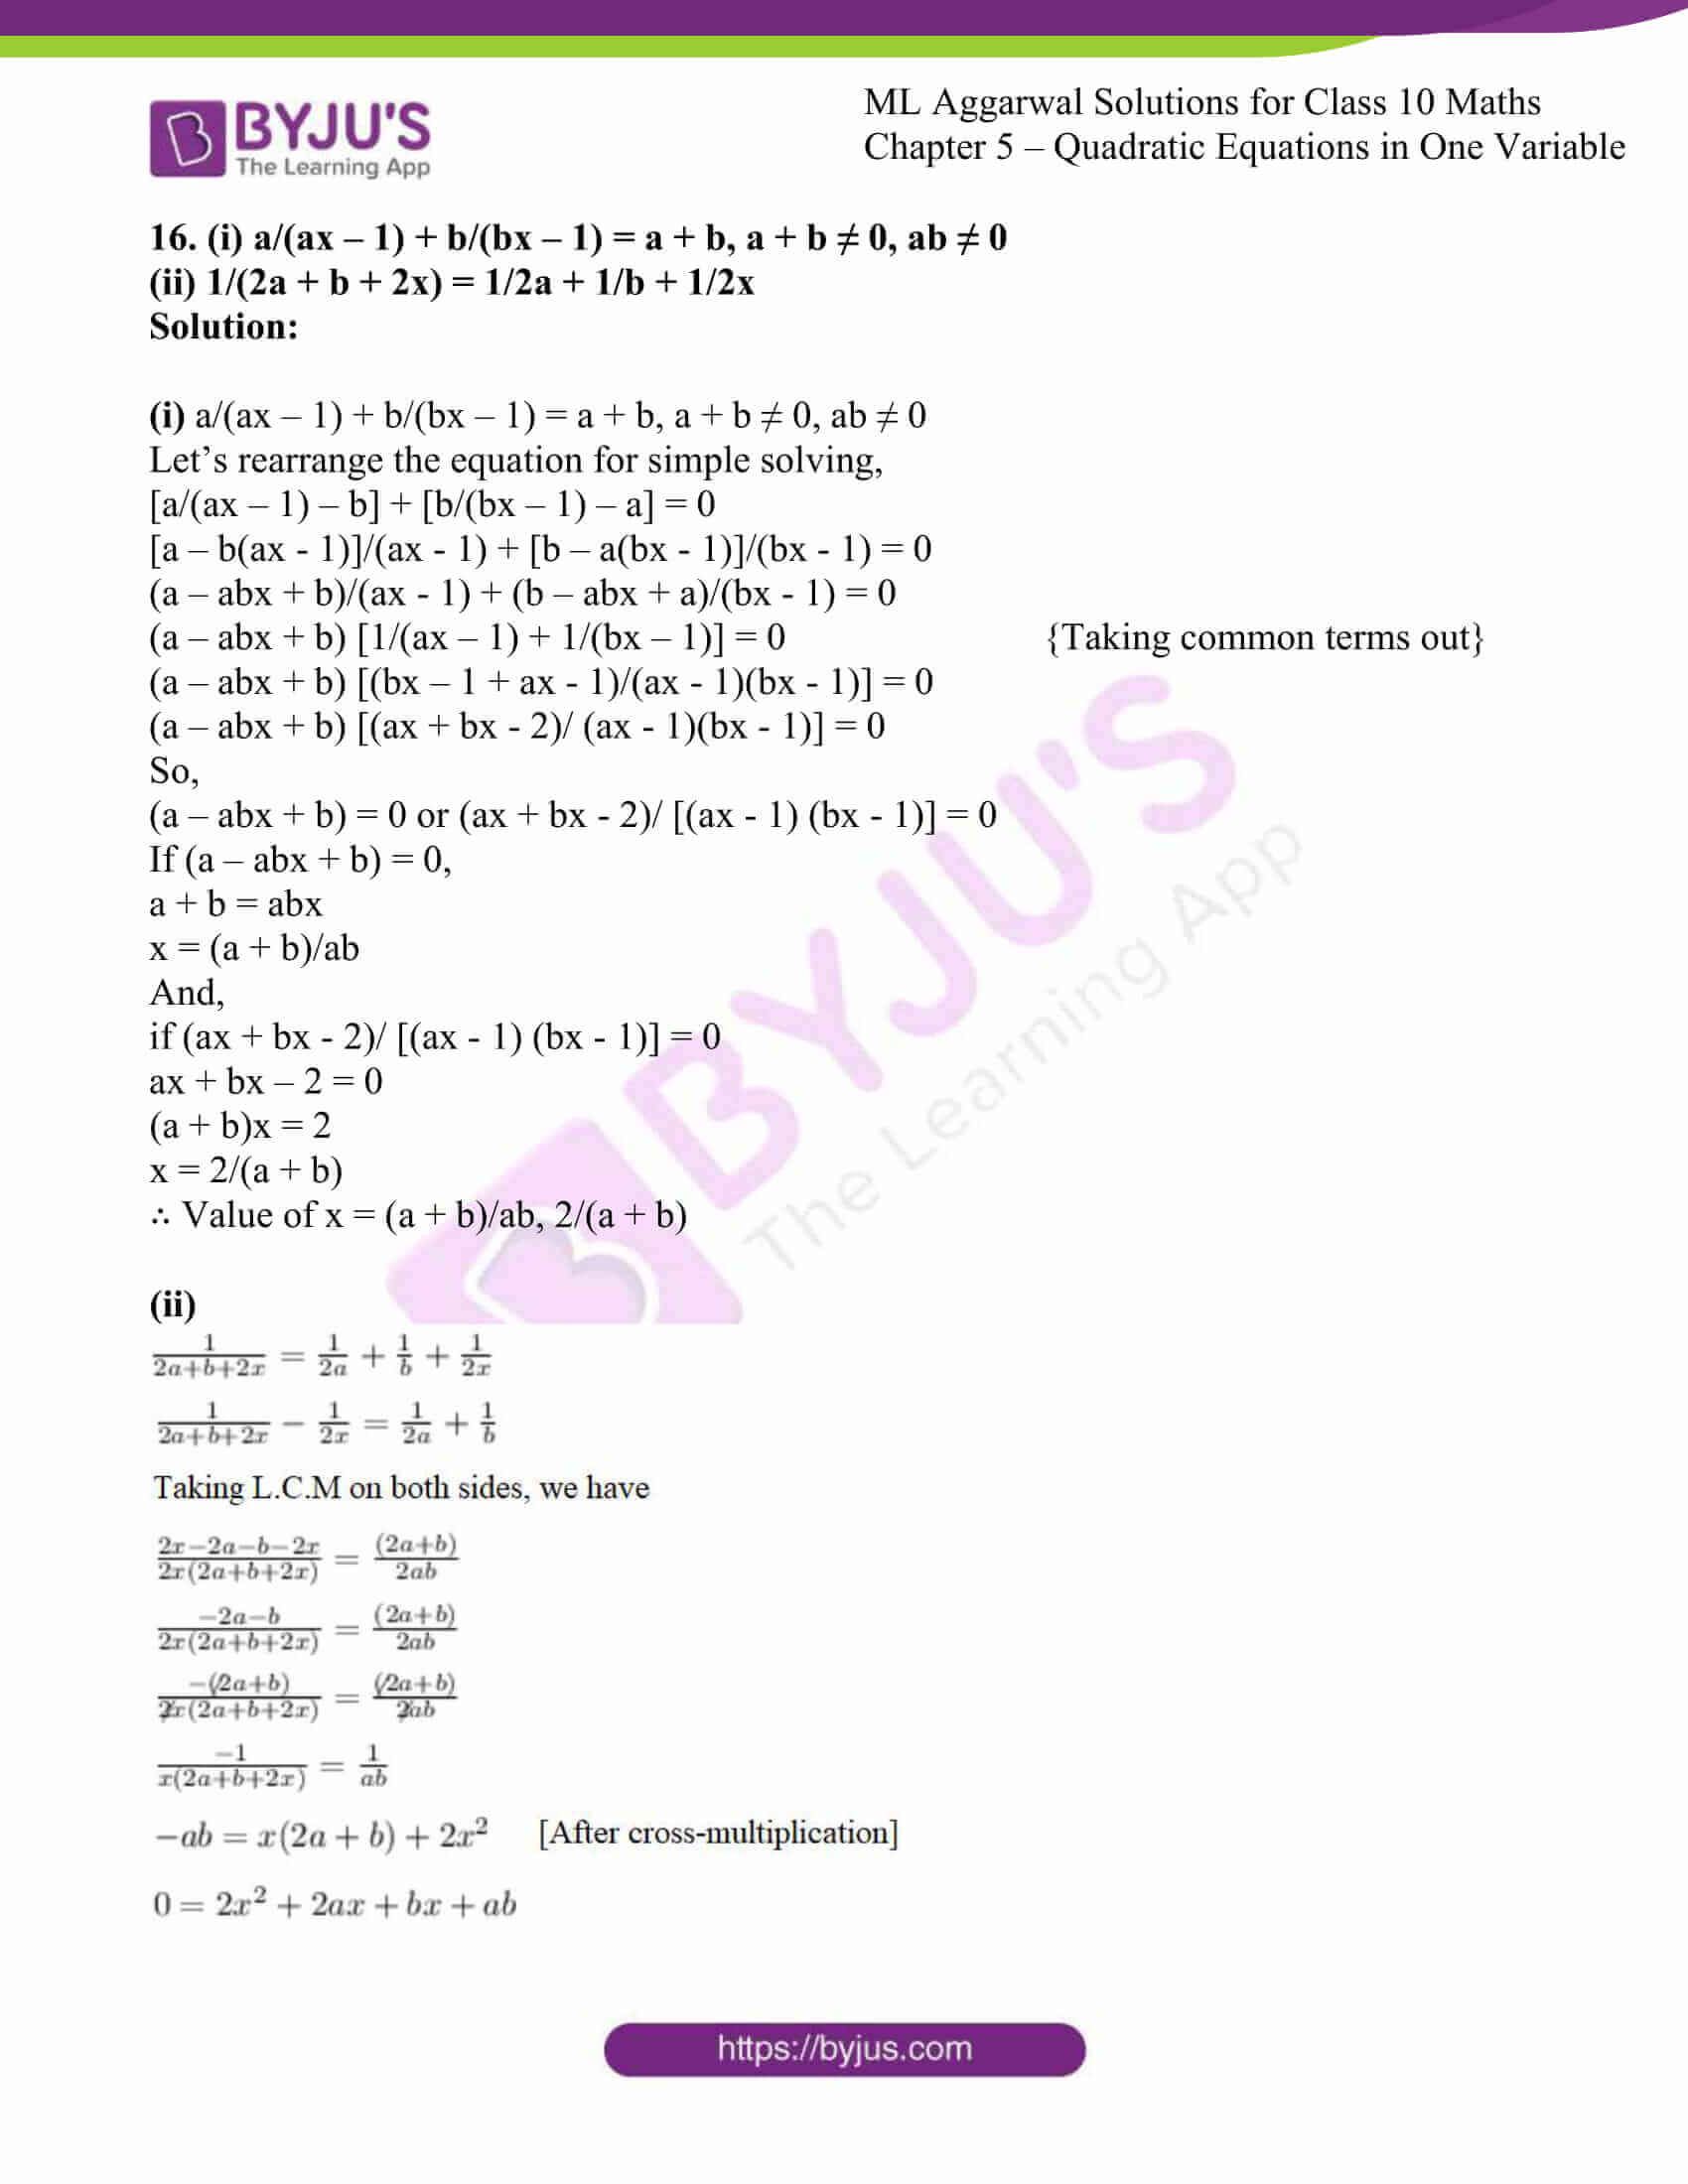 ml aggarwal solutions class 10 maths chapter 5 17